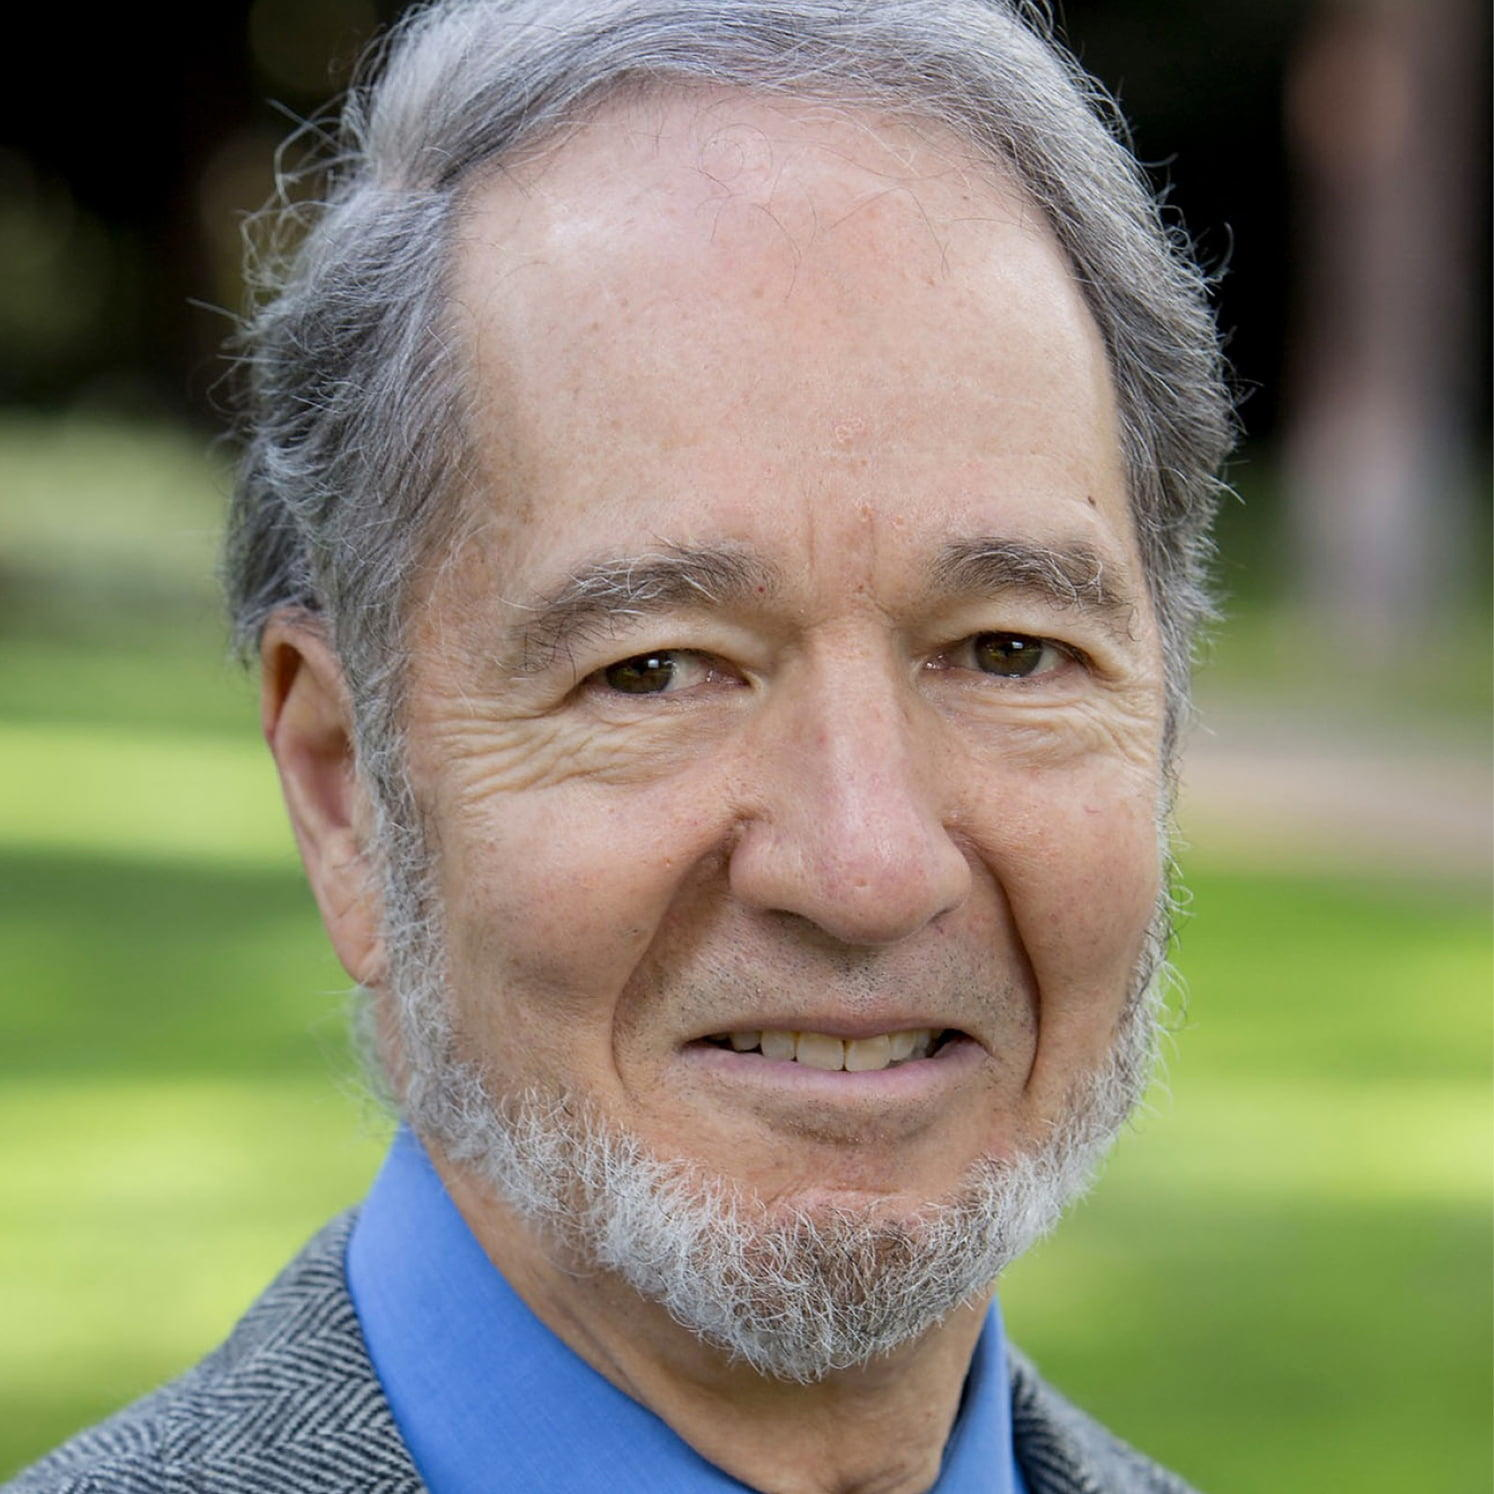 Prof. Jared Diamond